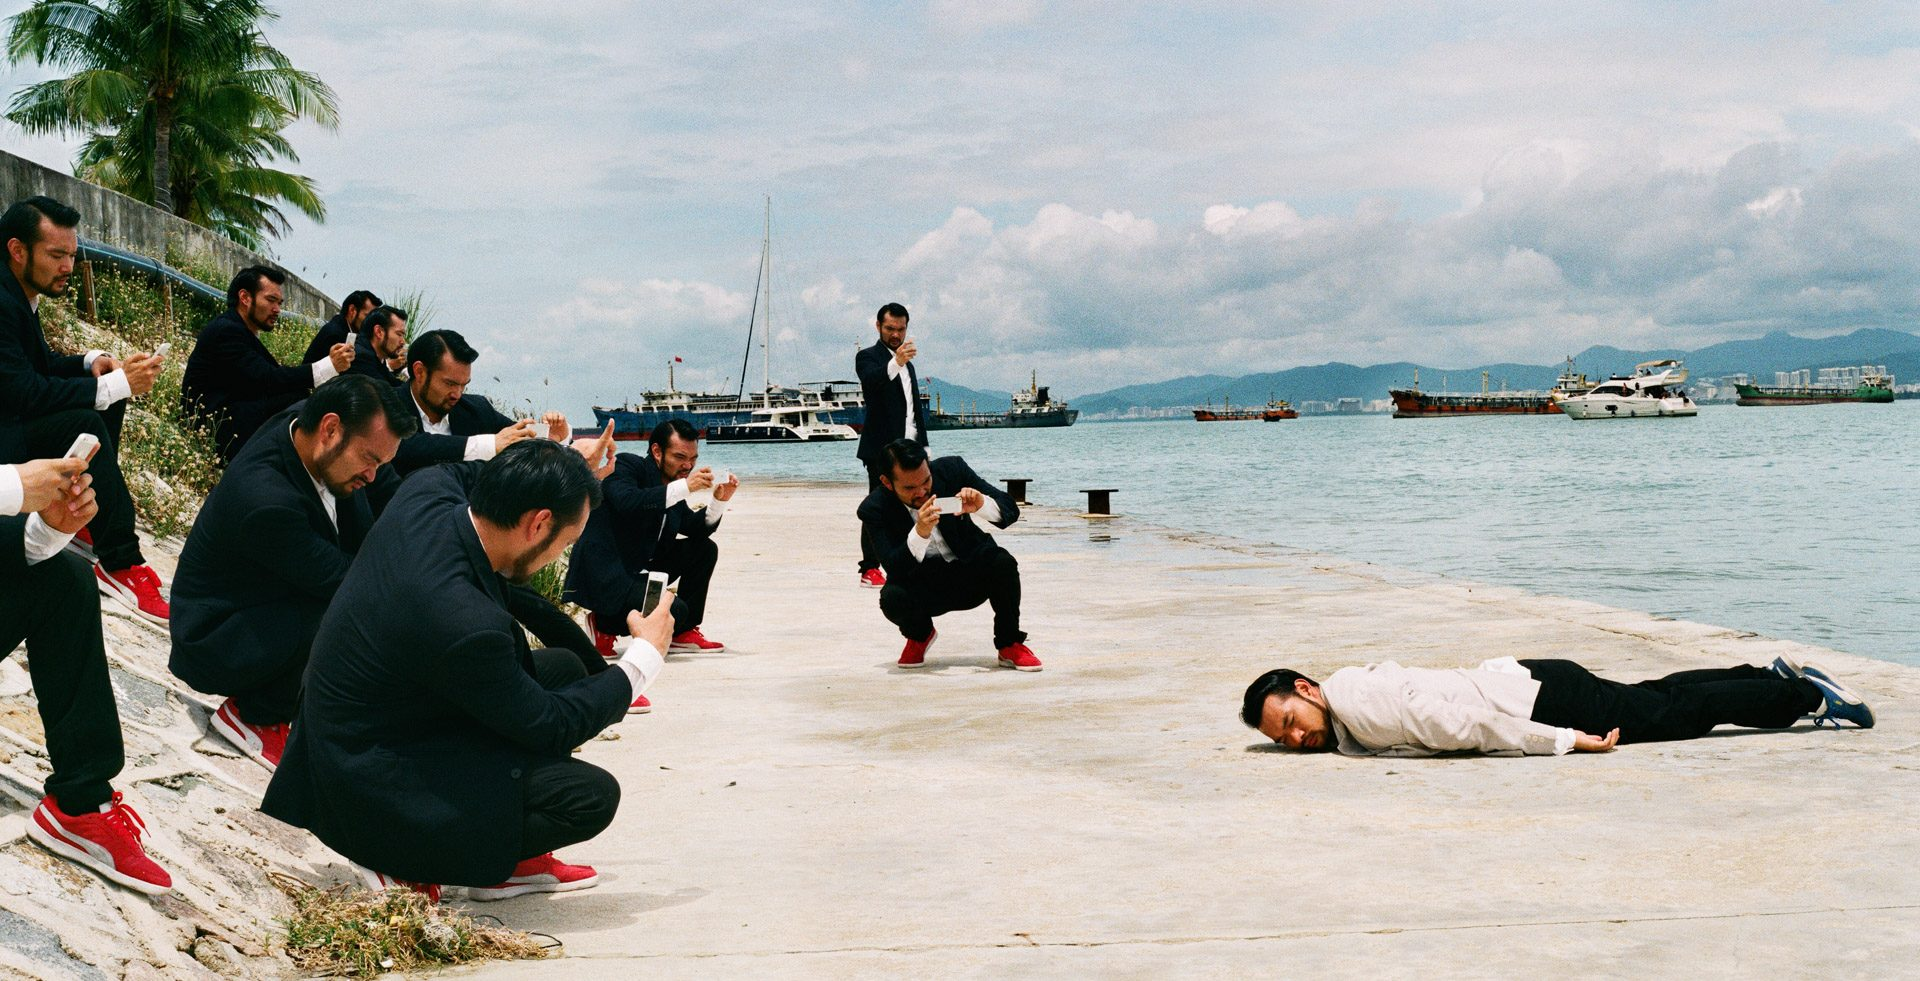 An asian in white lying face down on the ground next to the ocean, same group of asians in black taking pictures of him.